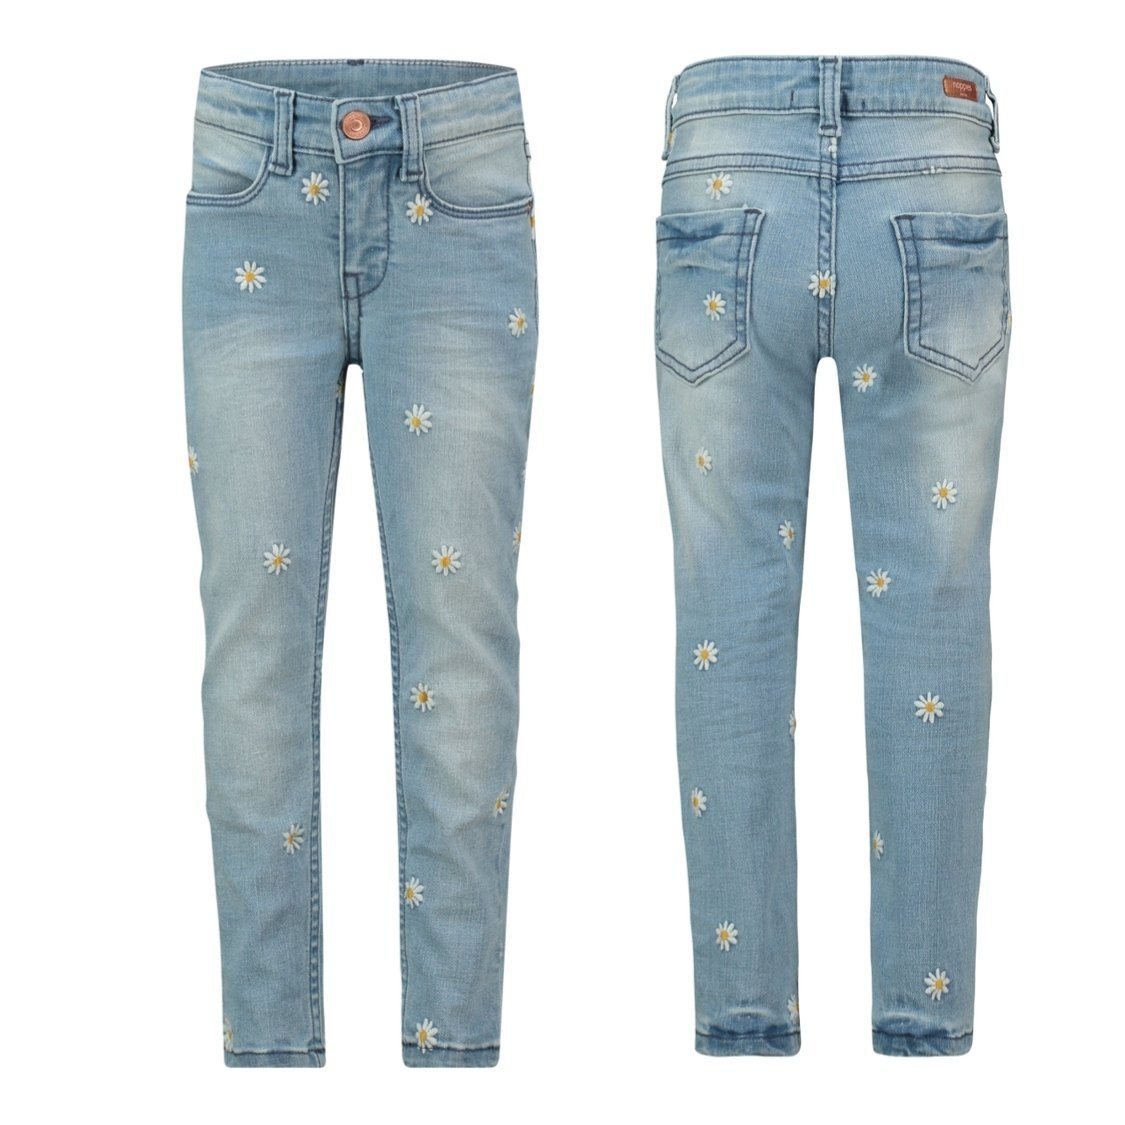 20511011-P493 Noppies Medium Blue Girls Cupertino Daisy Denim Pants Noppies